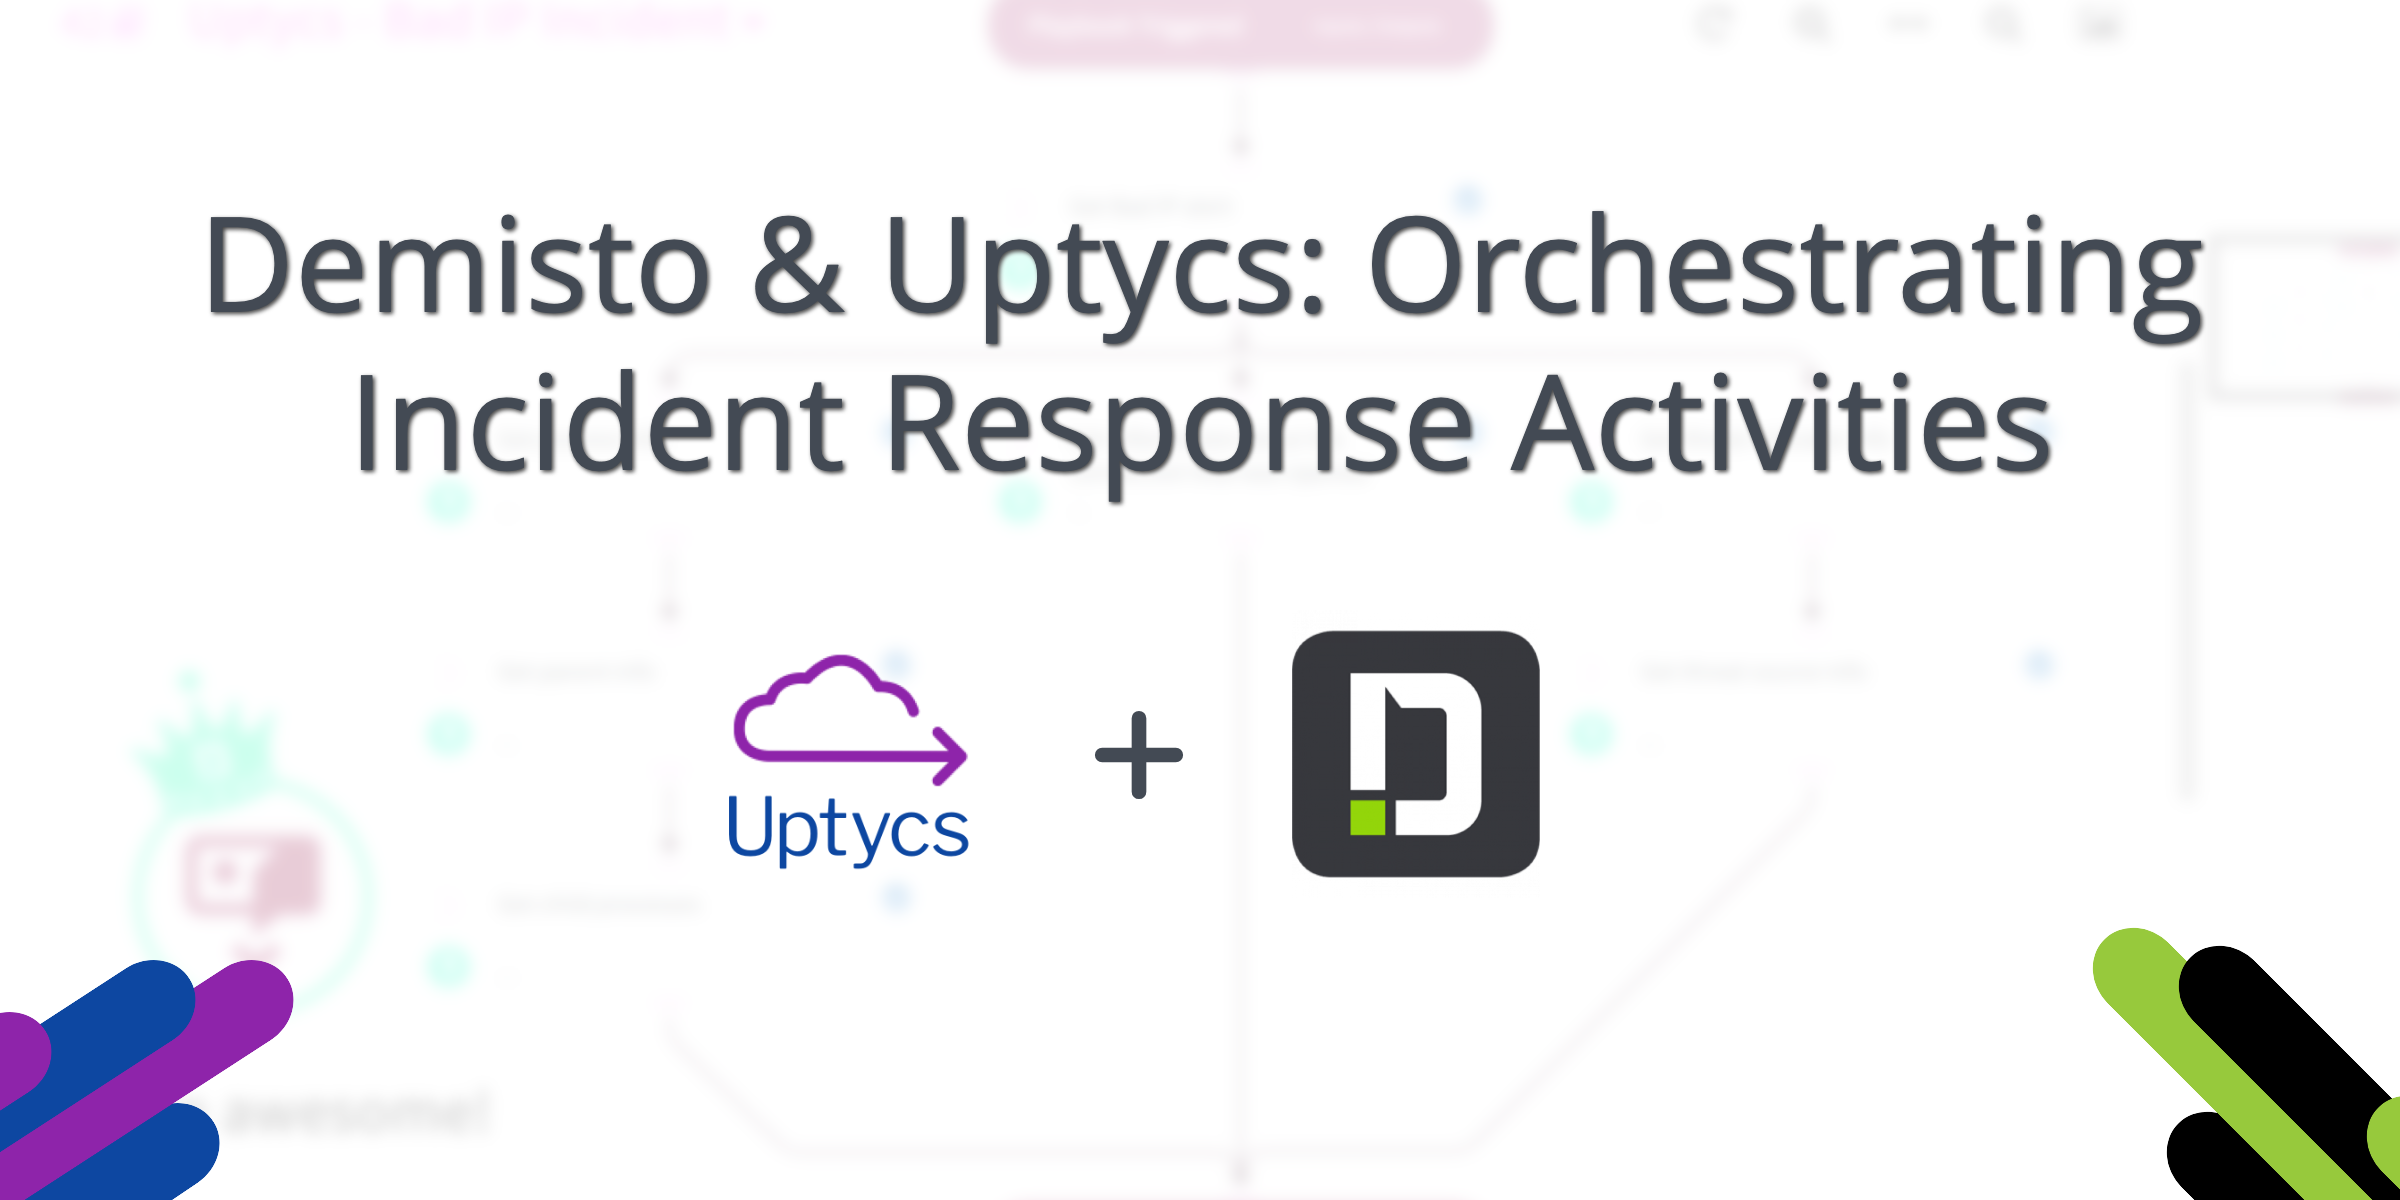 Demisto & Uptycs: Orchestrating Incident Response Activities